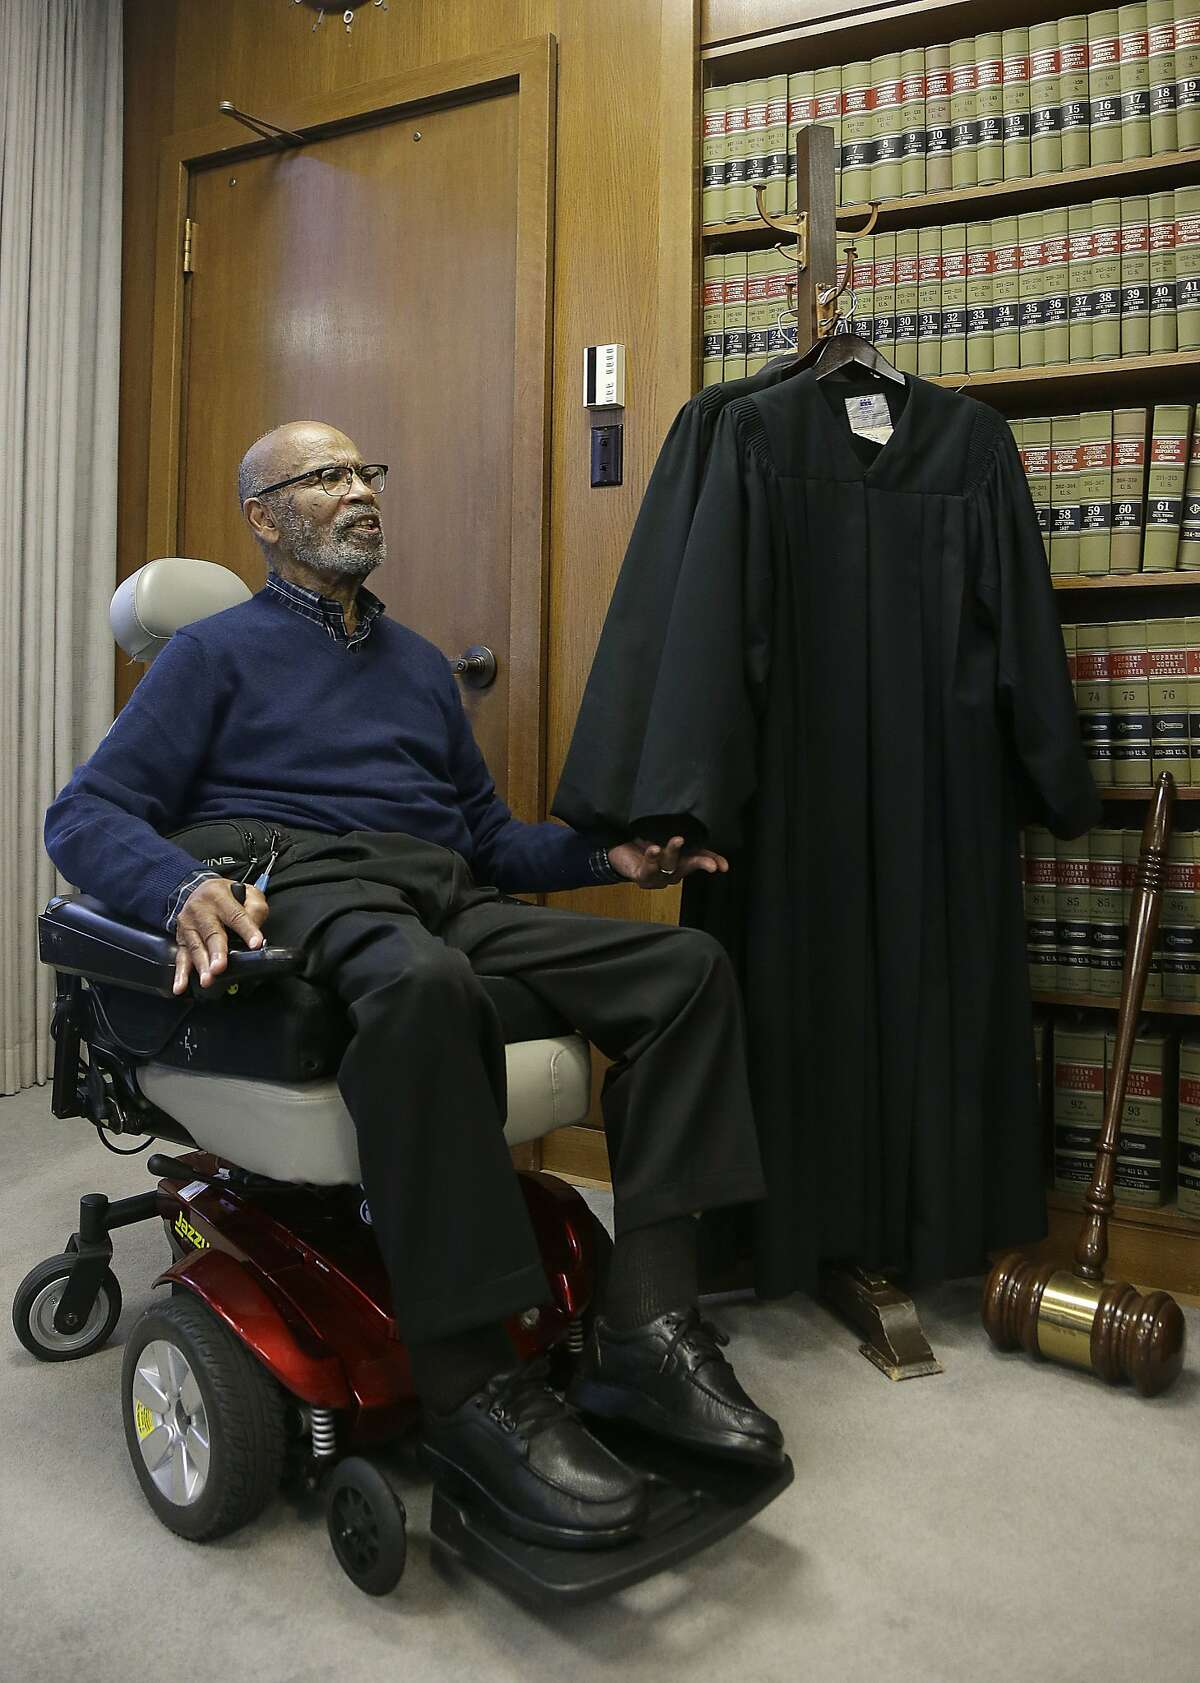 U.S. District Court Judge Thelton Henderson sits next to his robe while interviewed in his chambers in San Francisco, Tuesday, Jan. 10, 2017. Henderson, the first African-American attorney in the Justice Department's civil rights division, says he knows there will be more civil rights battles under the Trump administration, but at 83, he no longer has the energy to fight them. (AP Photo/Jeff Chiu)